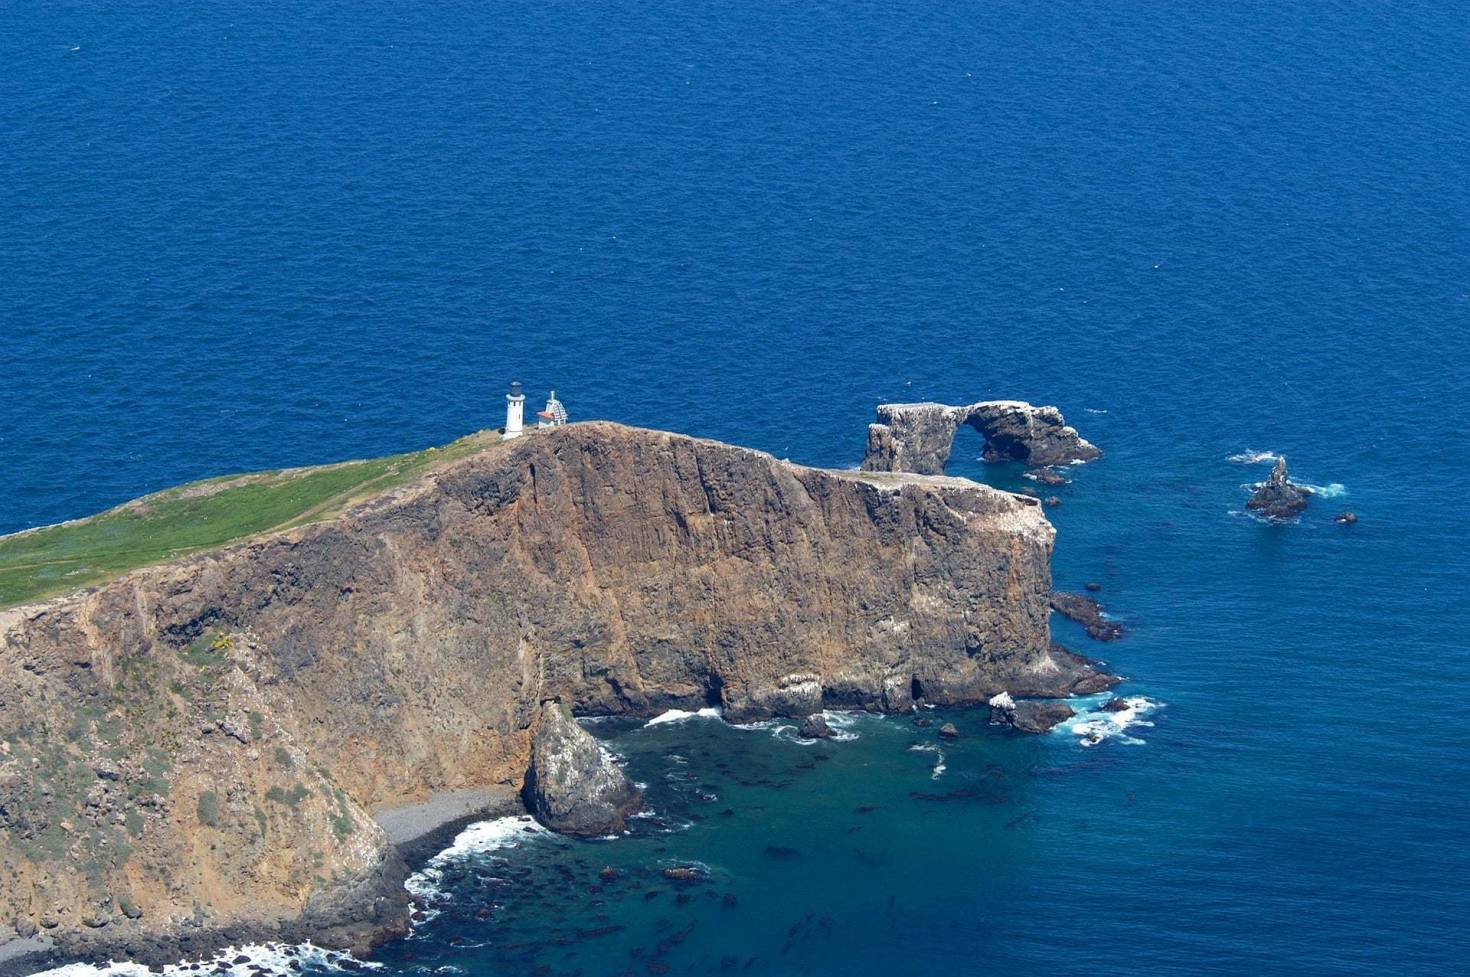 Anacapa Island in Channel Islands National Park